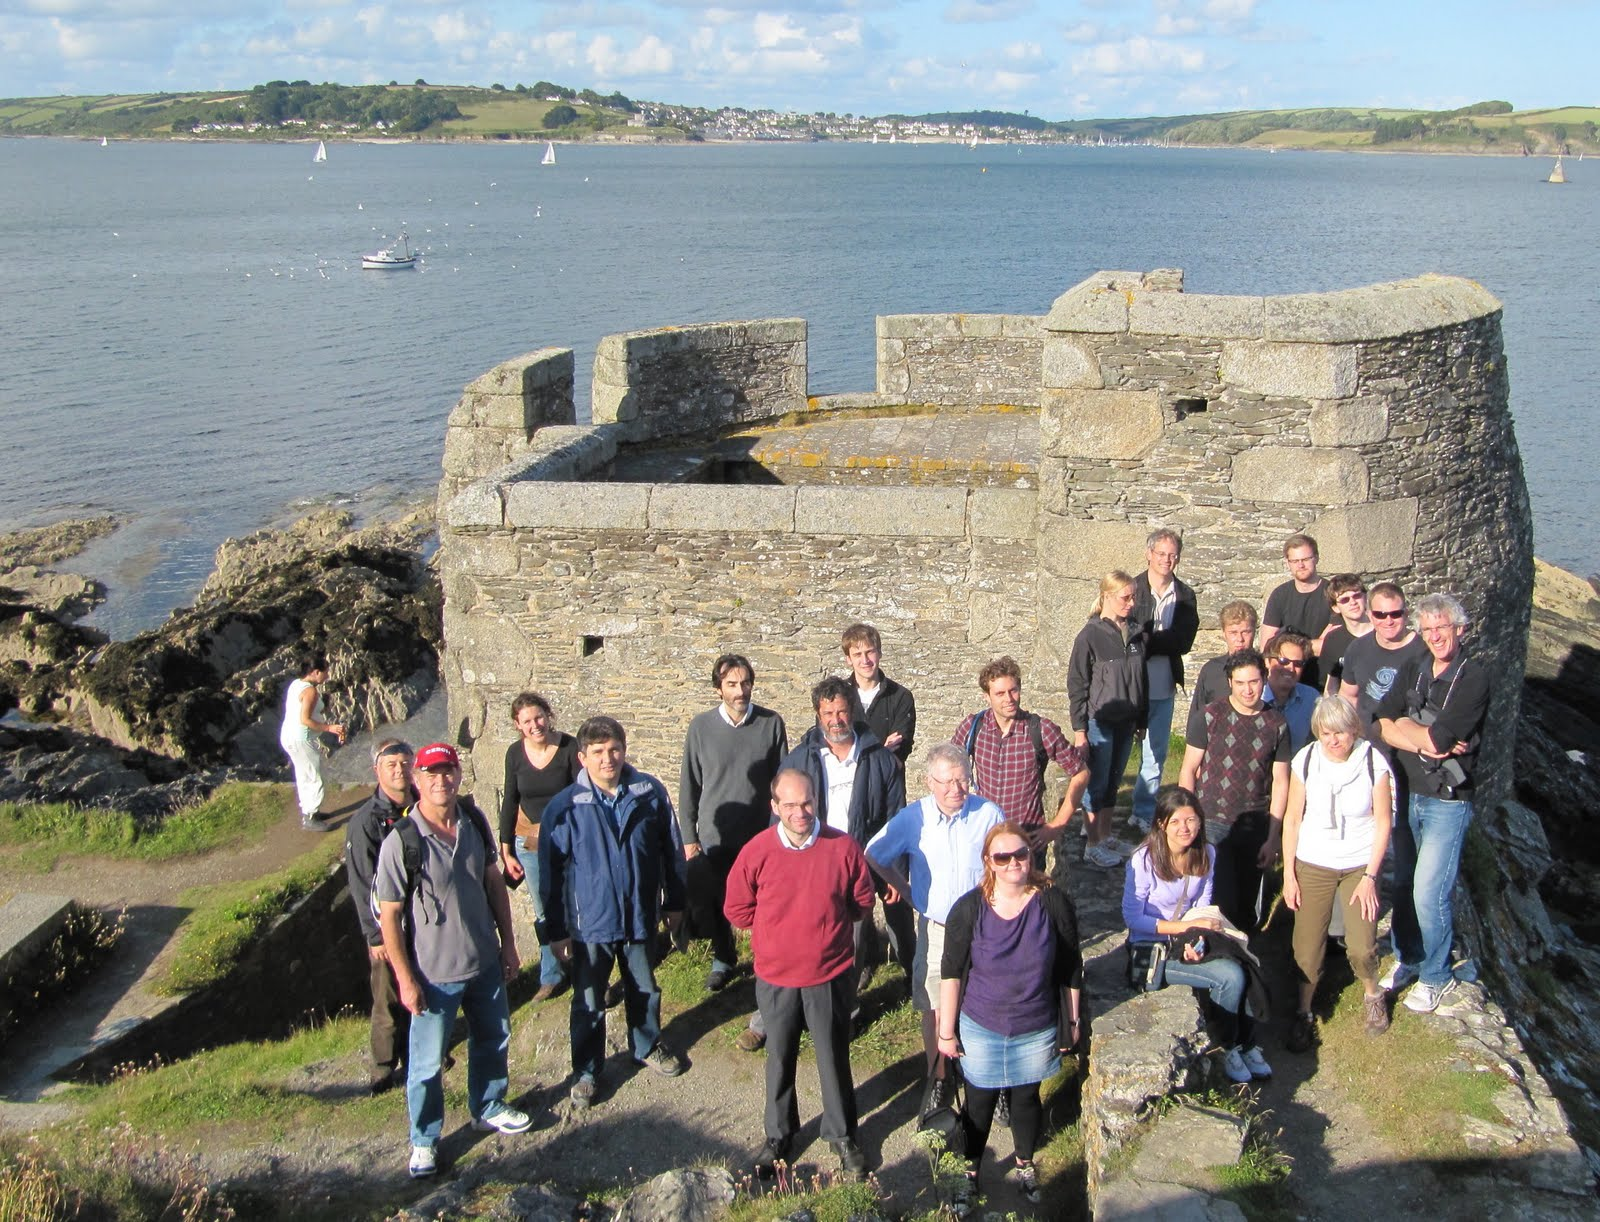 Pendennis Headland, Falmouth and Carrick Roads